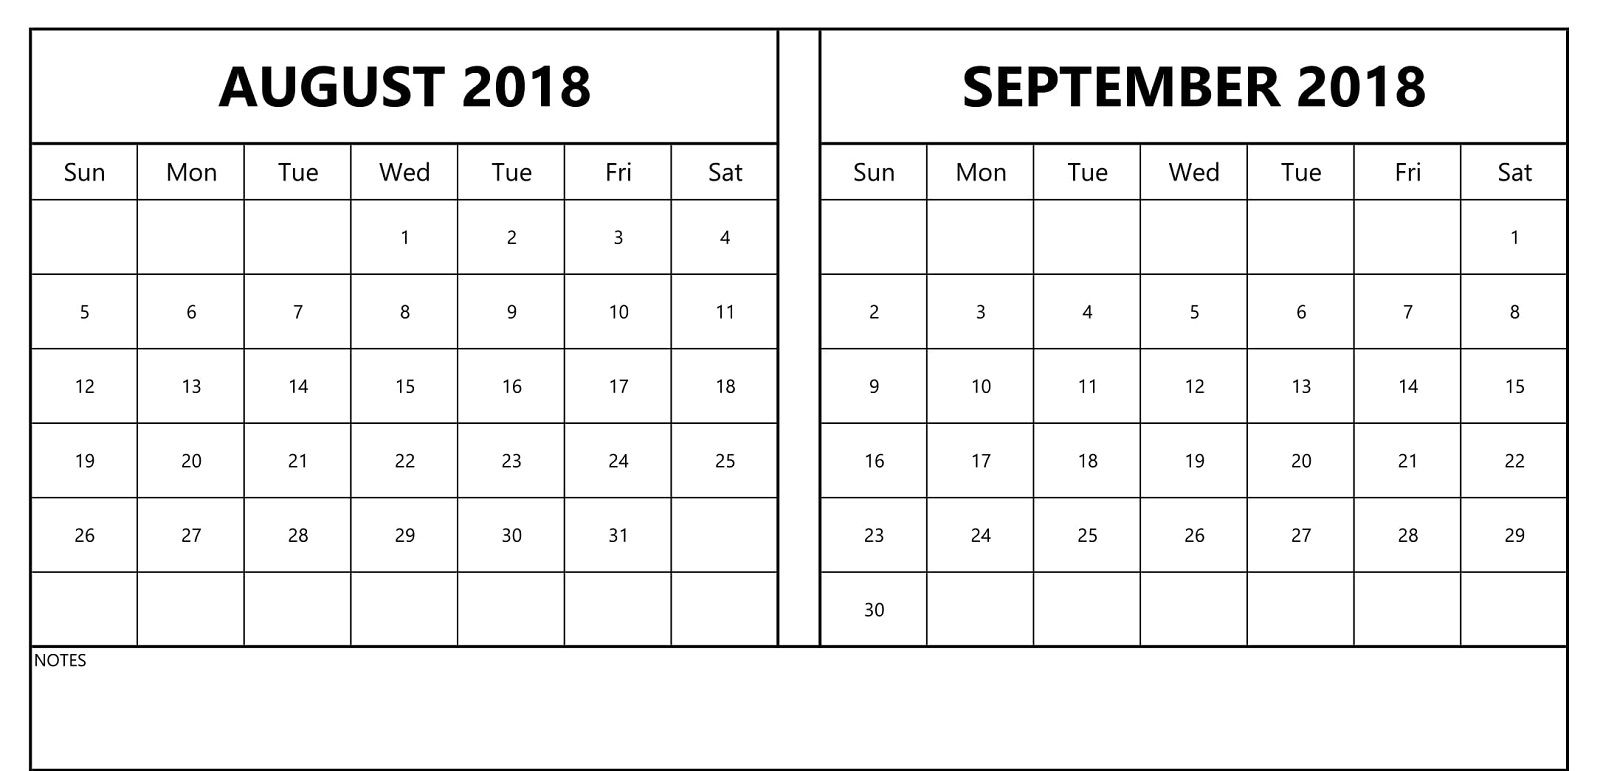 2018 Calander With Holidays August To December | Calendar Format Example within November Calendar For Quikcalendertemplate